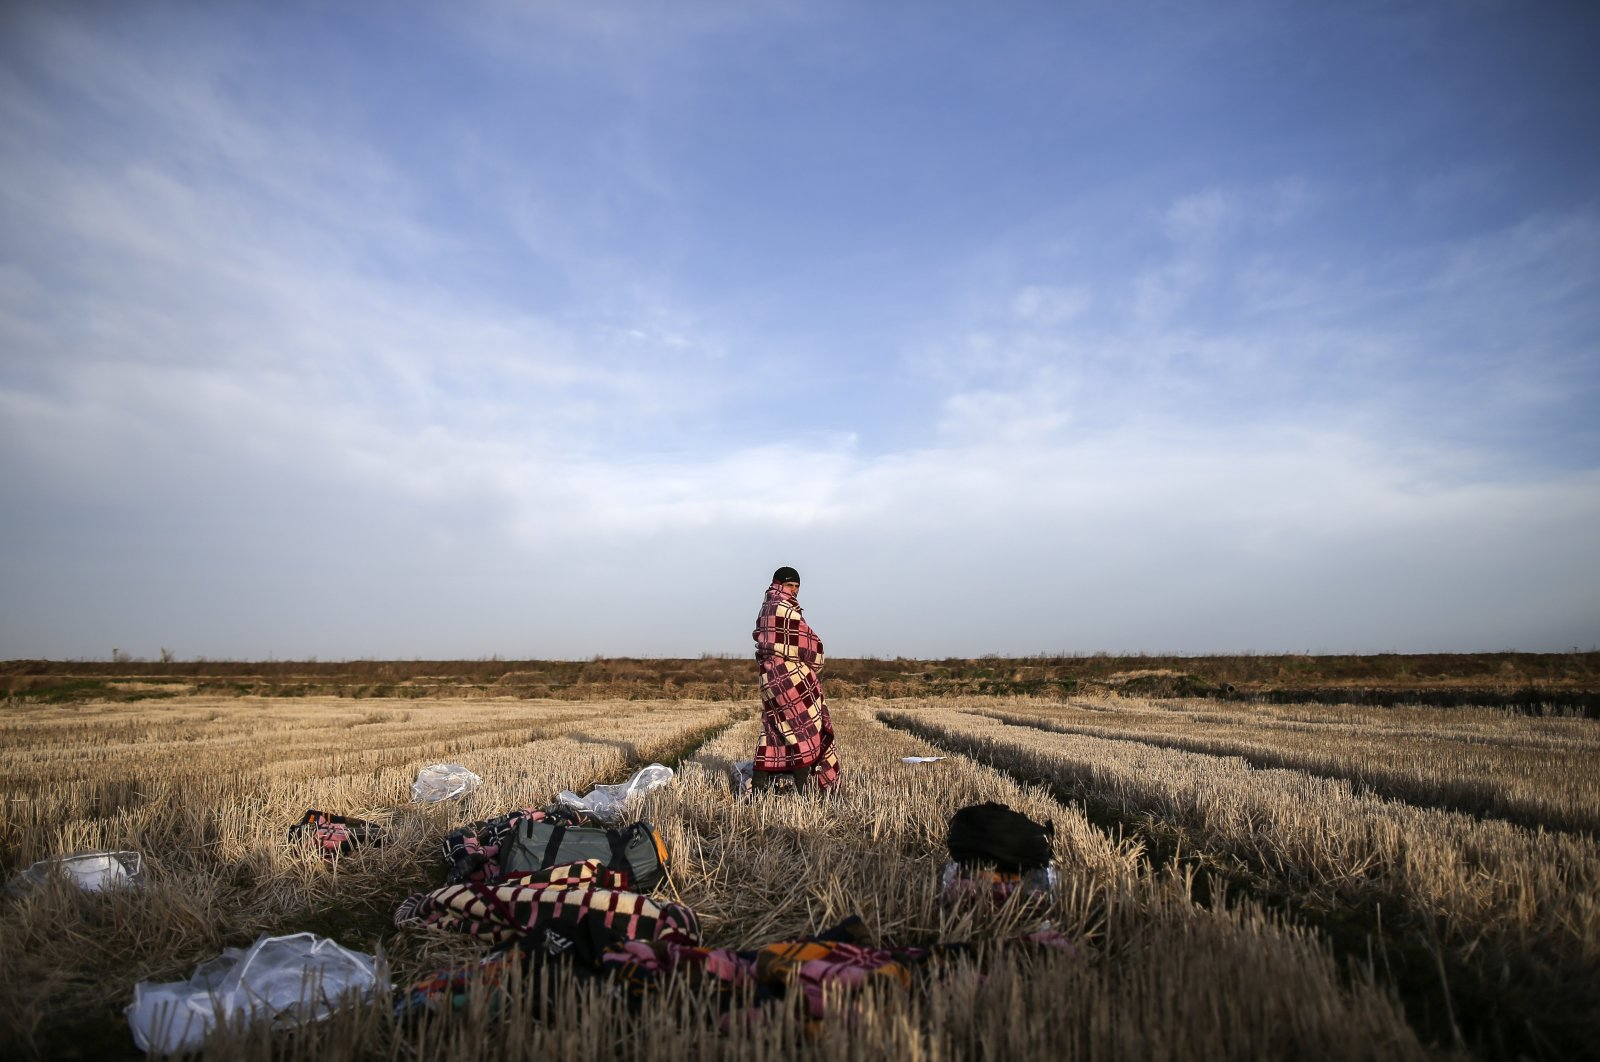 A migrant uses a blanket to warm himself in a field near Edirne, at the Turkish-Greek border, March 3, 2020. (AP Photo)